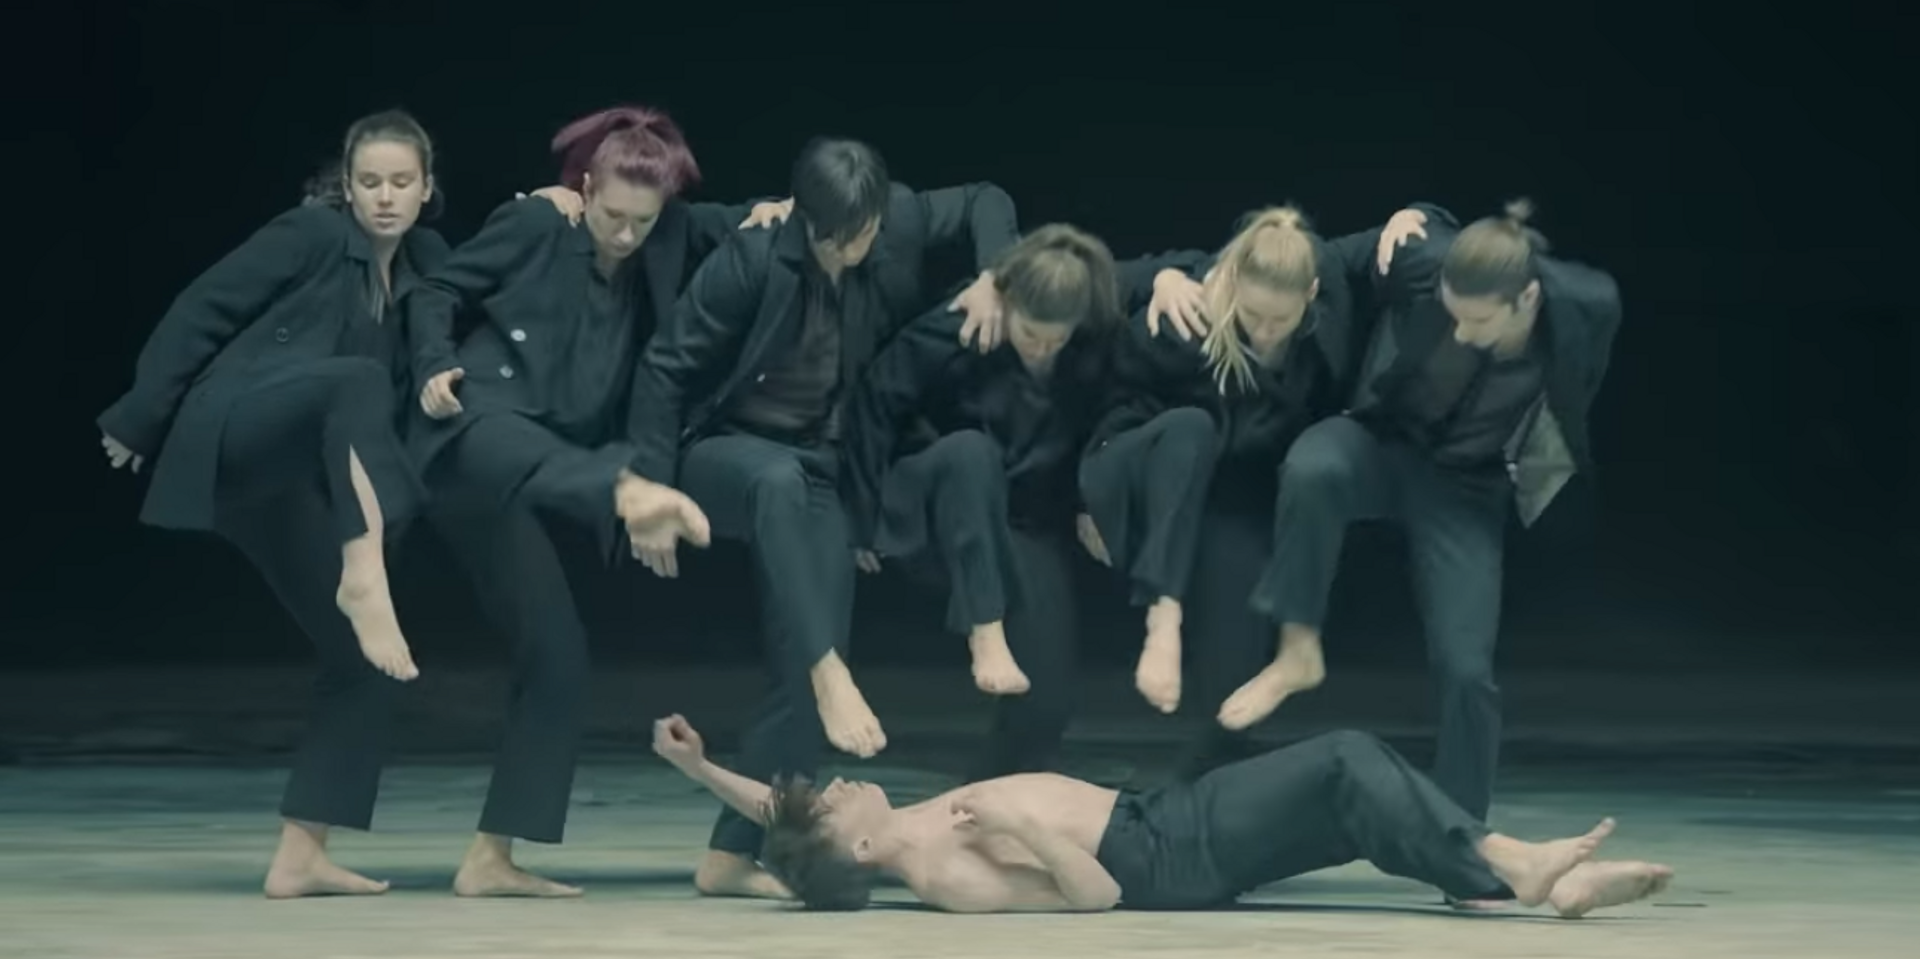 Twitter reacts to BTS' 'Black Swan' music video